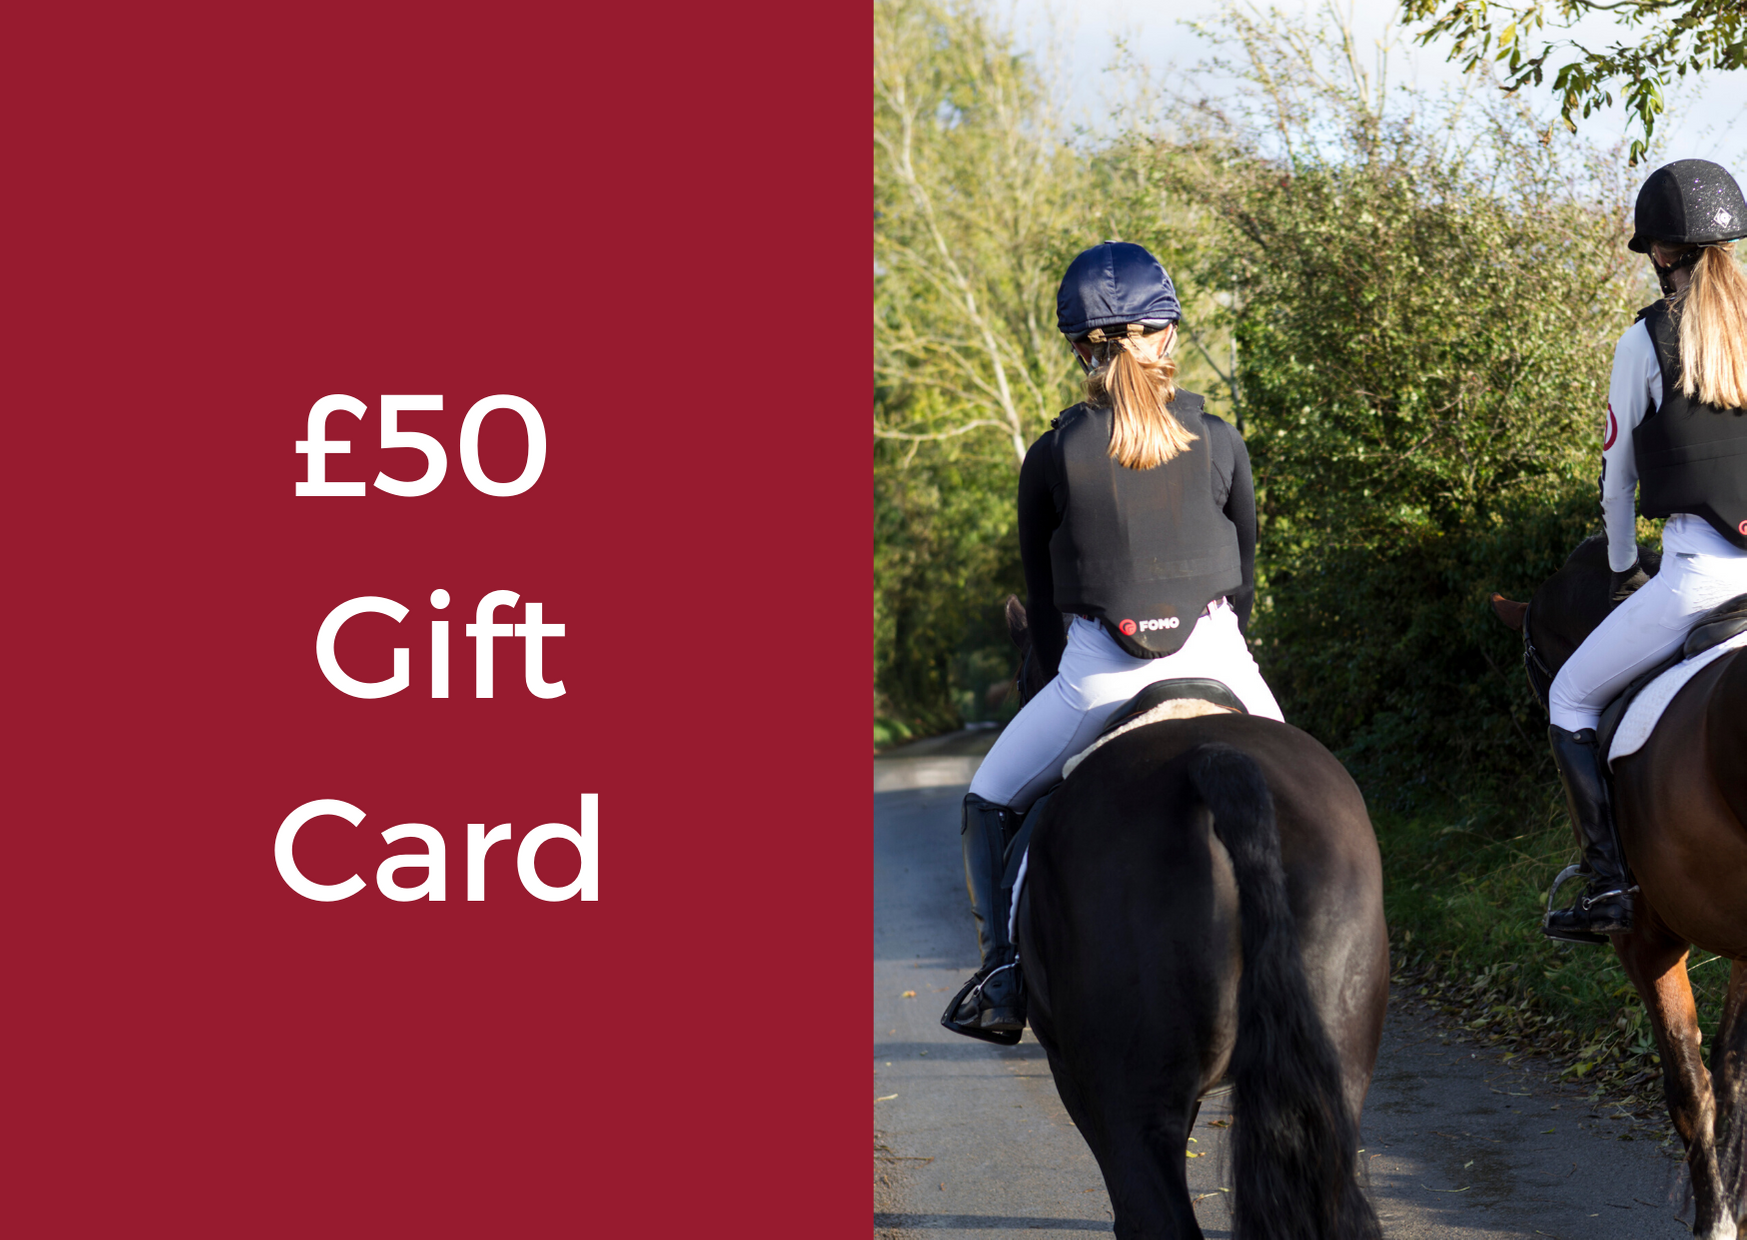 https://www.fomoprotection.com/wp-content/uploads/2019/11/£50-Gift-Card.png